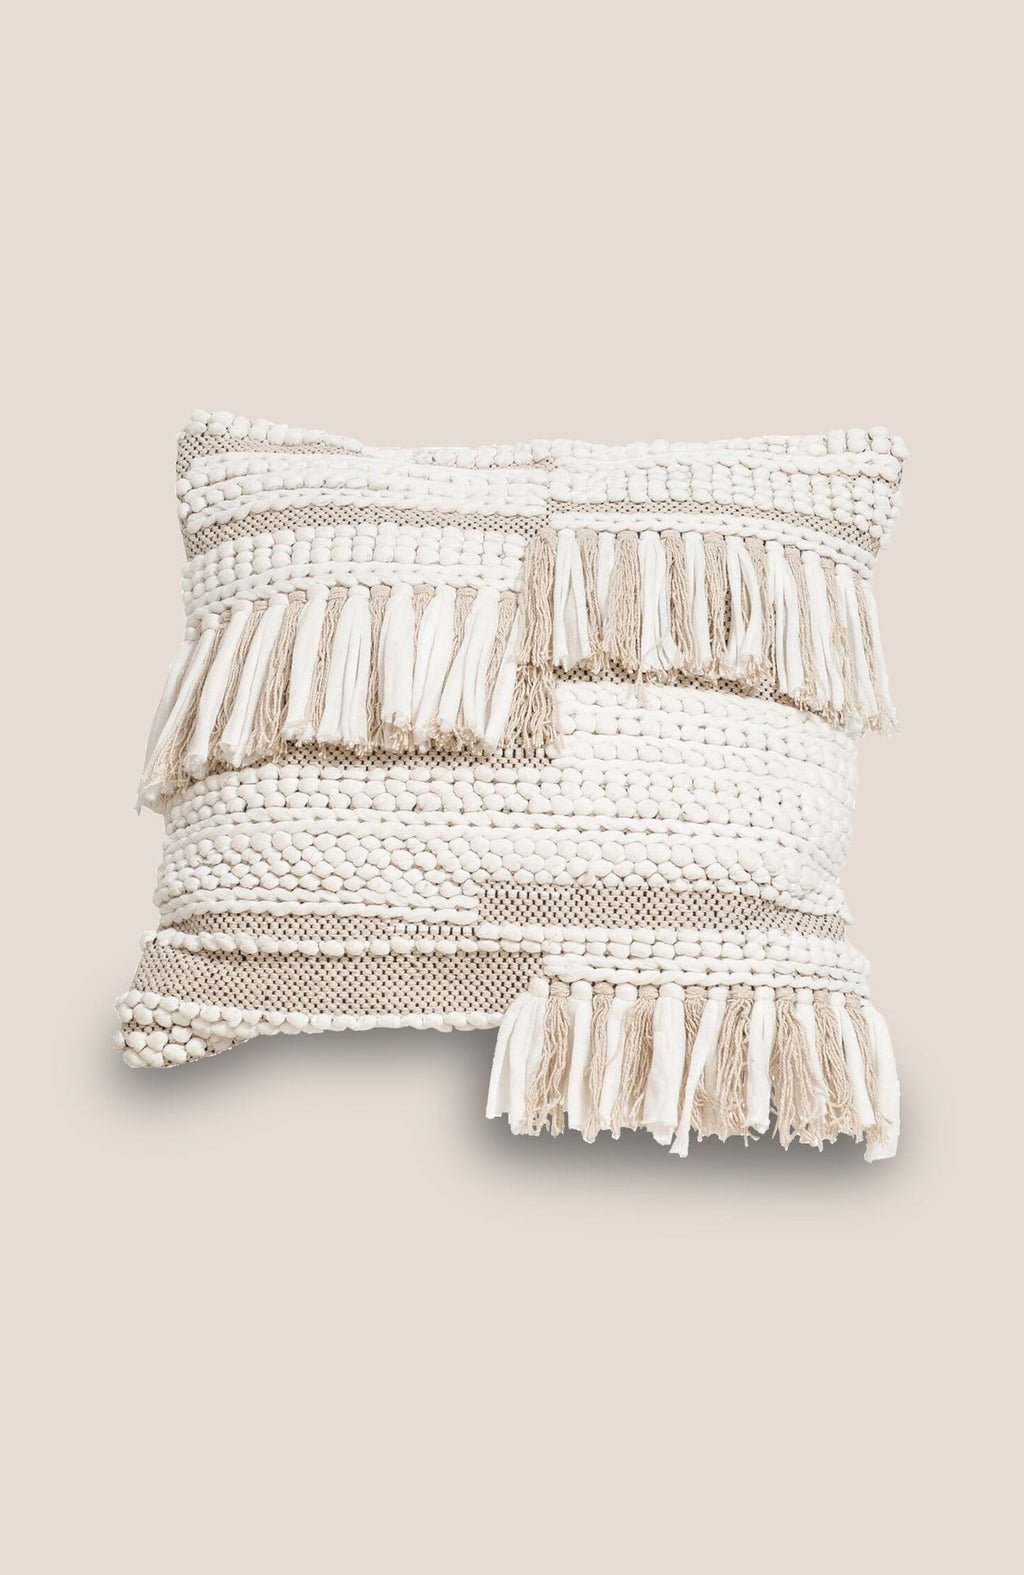 Boho Tassel Pillow Cover - Marra - Home Decor | Shop Baskets, Ceramics, Pillows, Rugs & Wall Hangs online